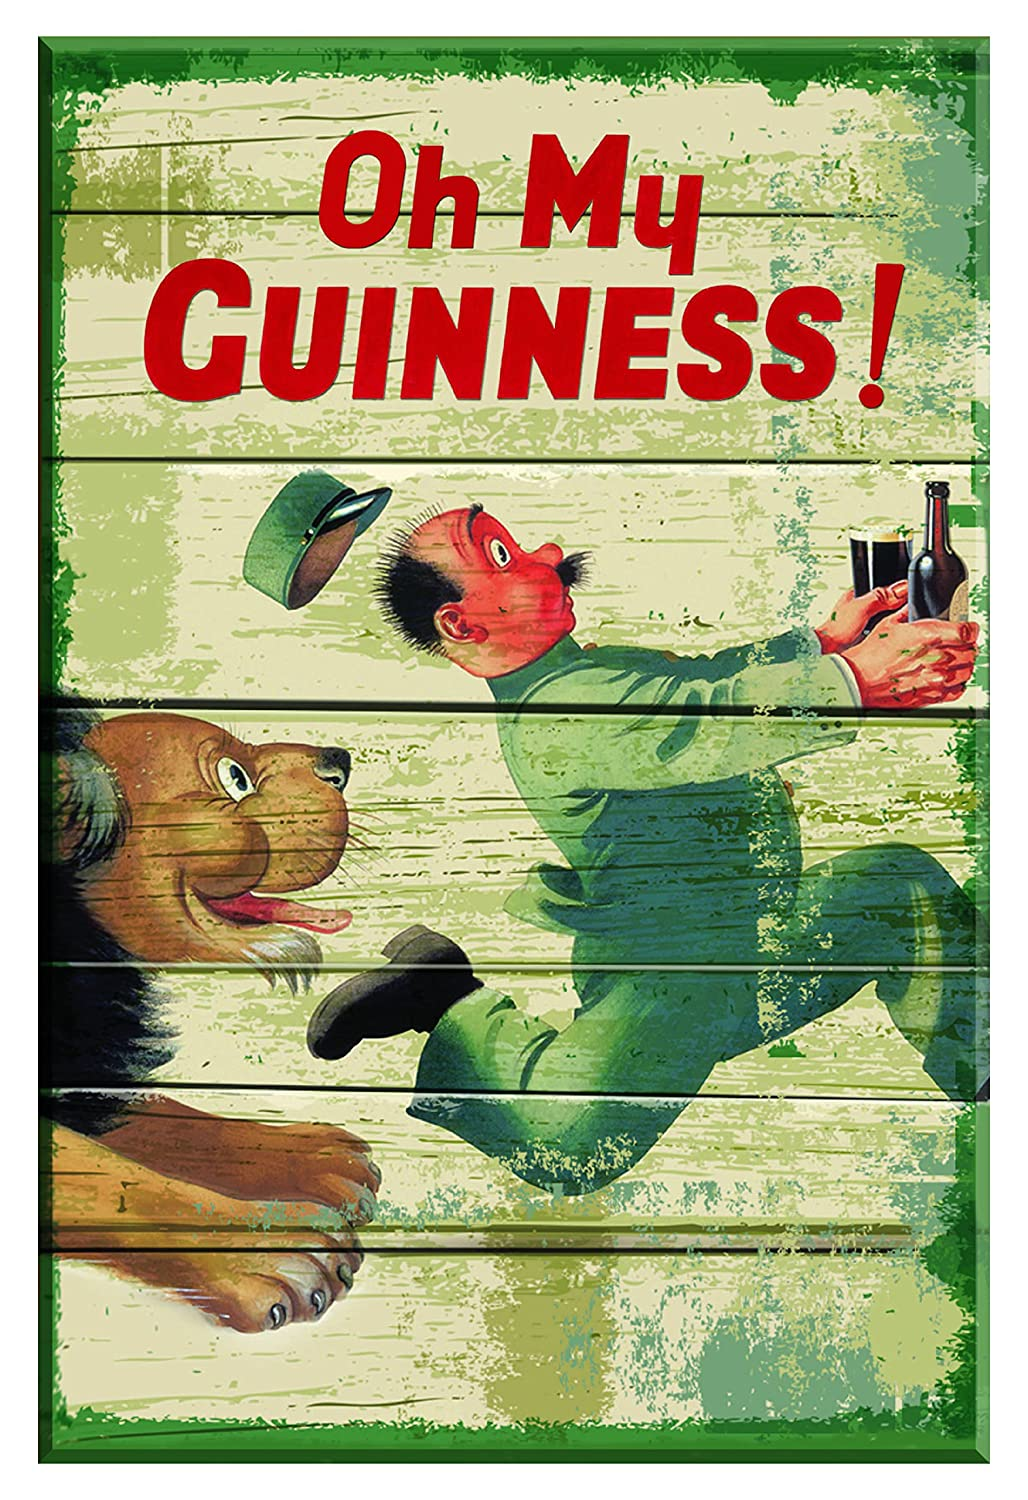 Amazon.com: Nostalgic Guinness Wooden Sign with Zoo keeper & Lion ...